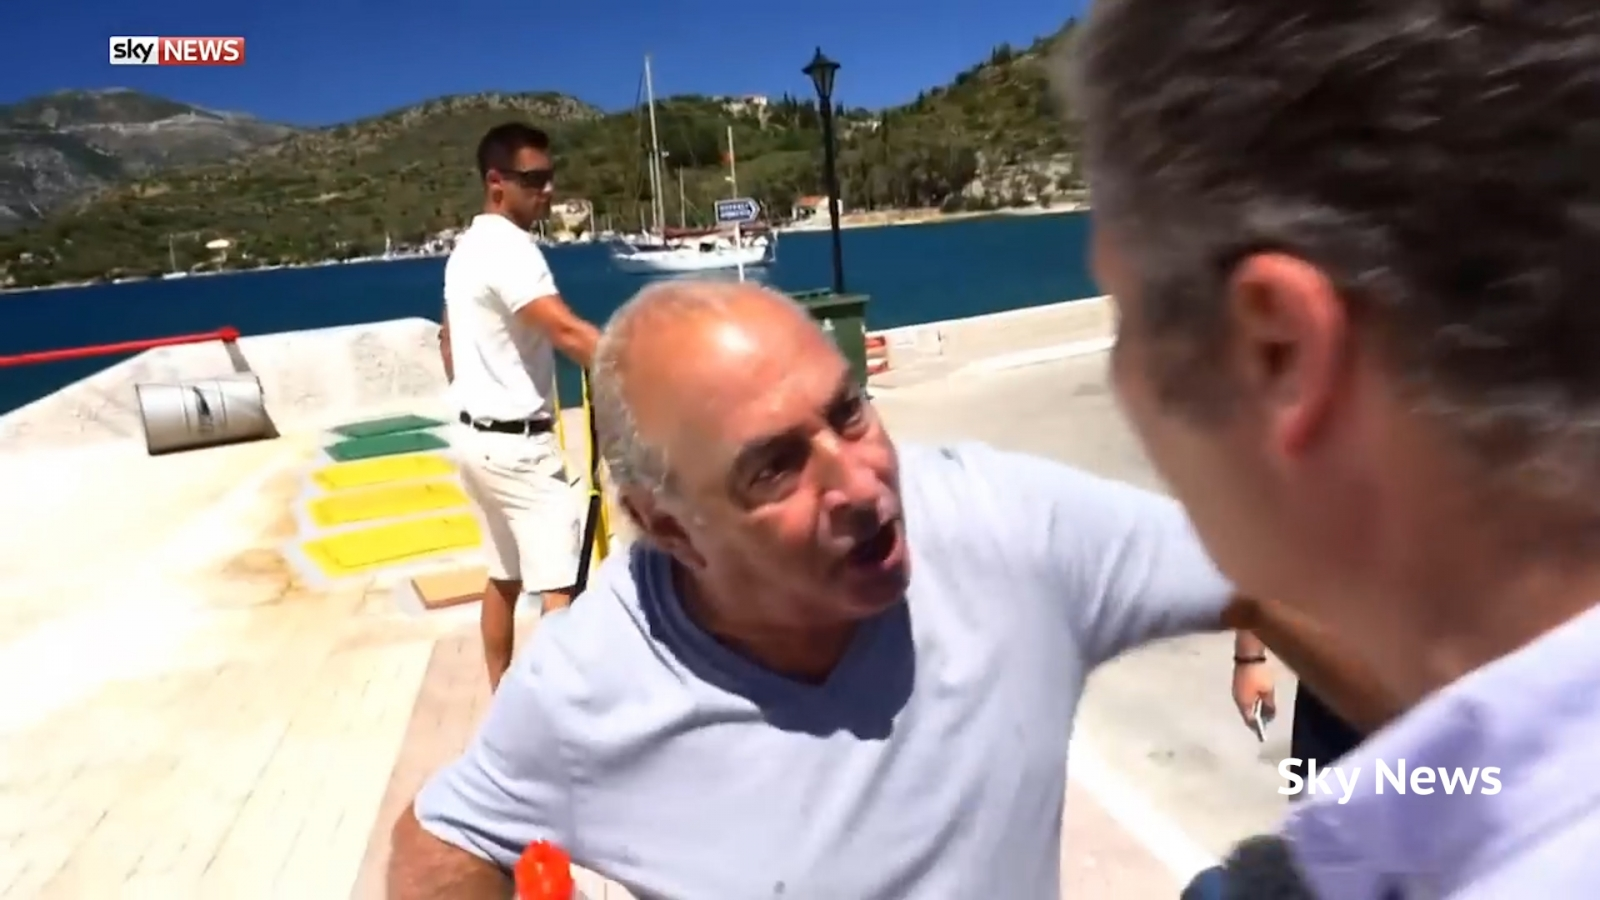 Philip Green confronted by Sky News journalist